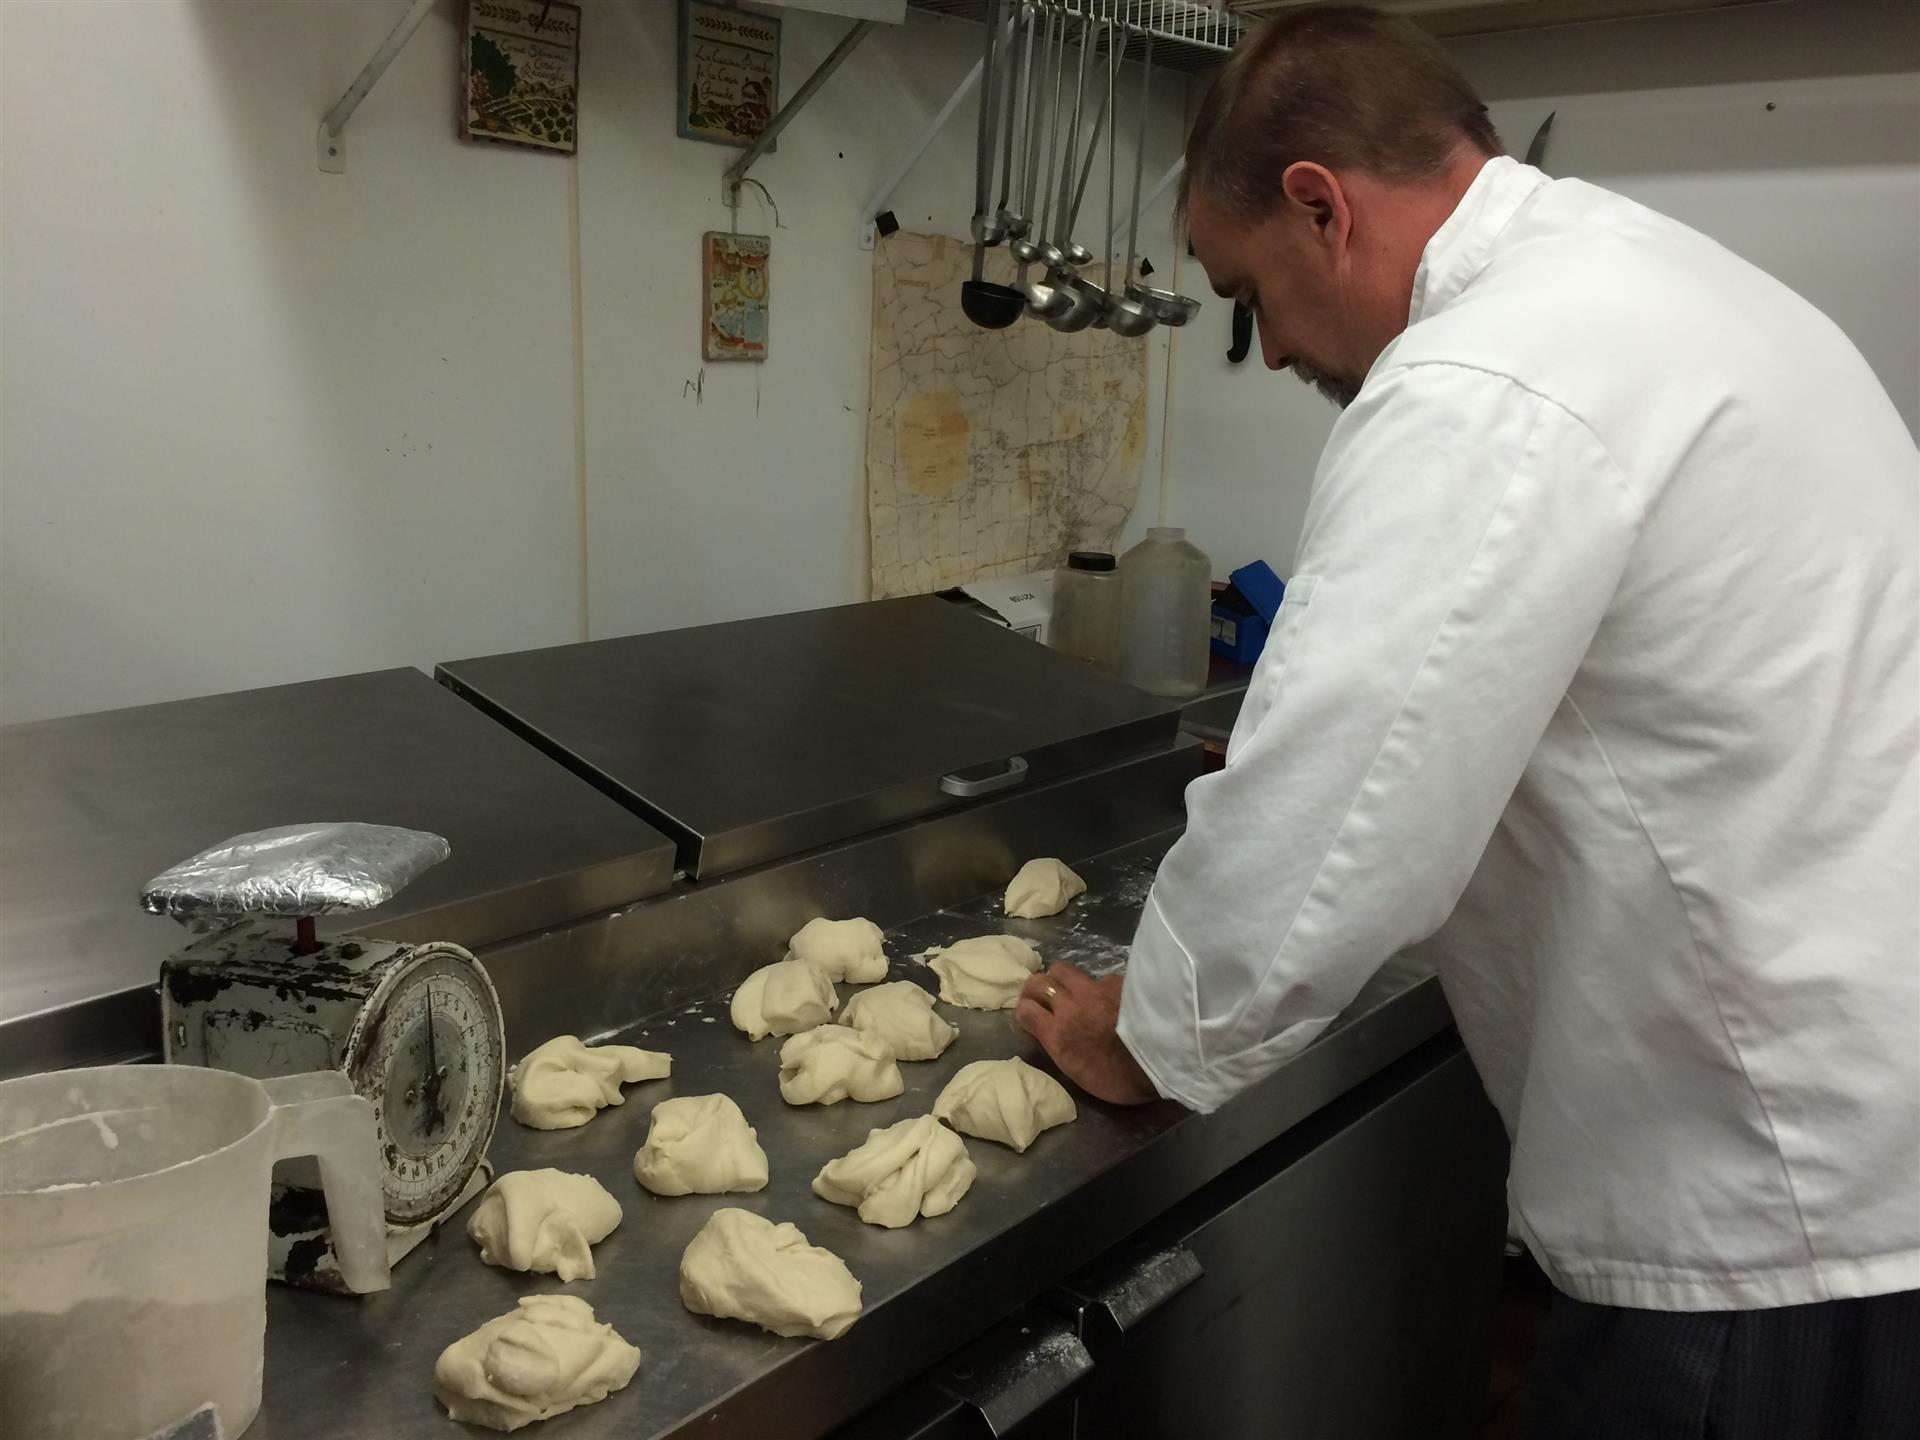 Chef Anthony Abeel rolling out pizza dough